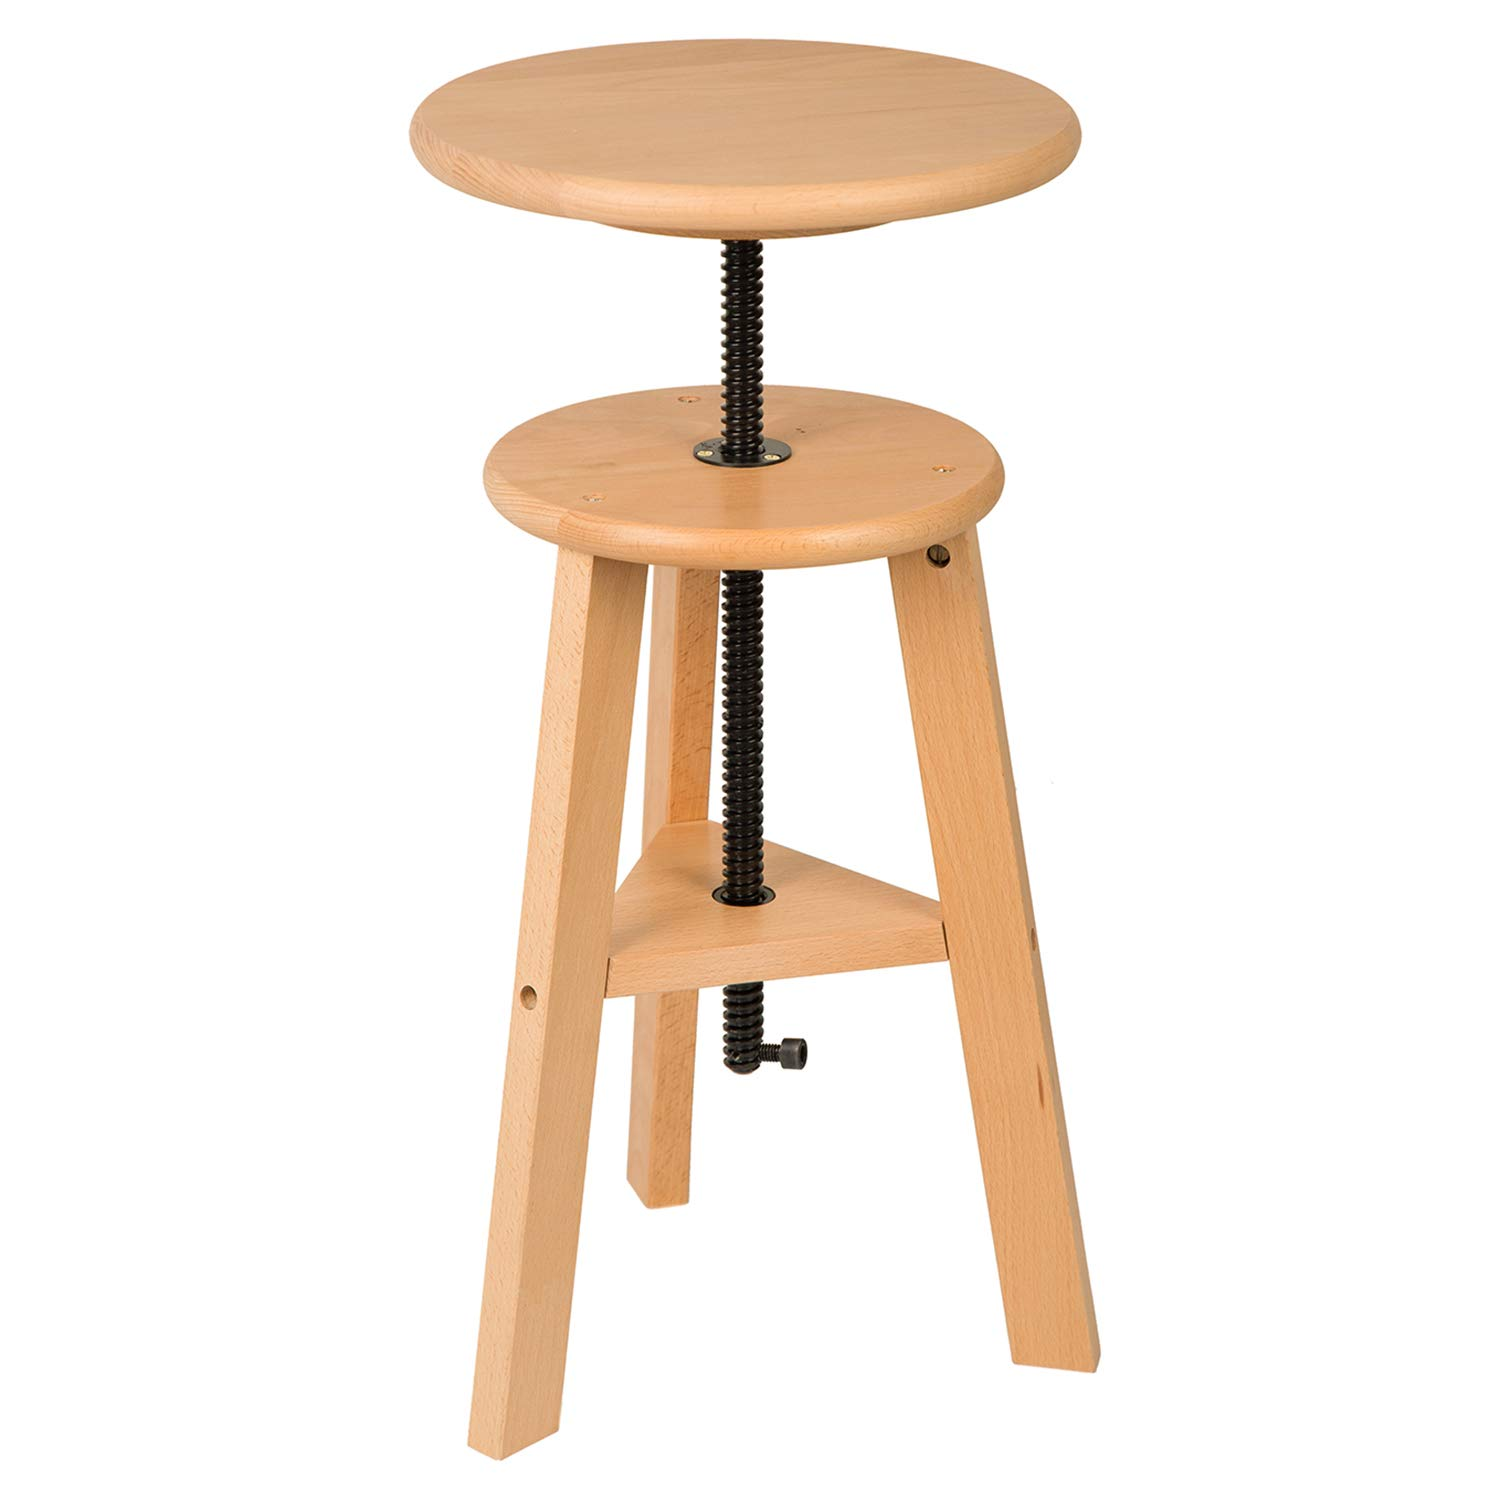 Wooden Drafting Stool with Adjustable Height by MEEDEN - Wood Drafting Chair - Improve Productivity, Good for Spine - Up to 220 Lbs, German Beech by MEEDEN